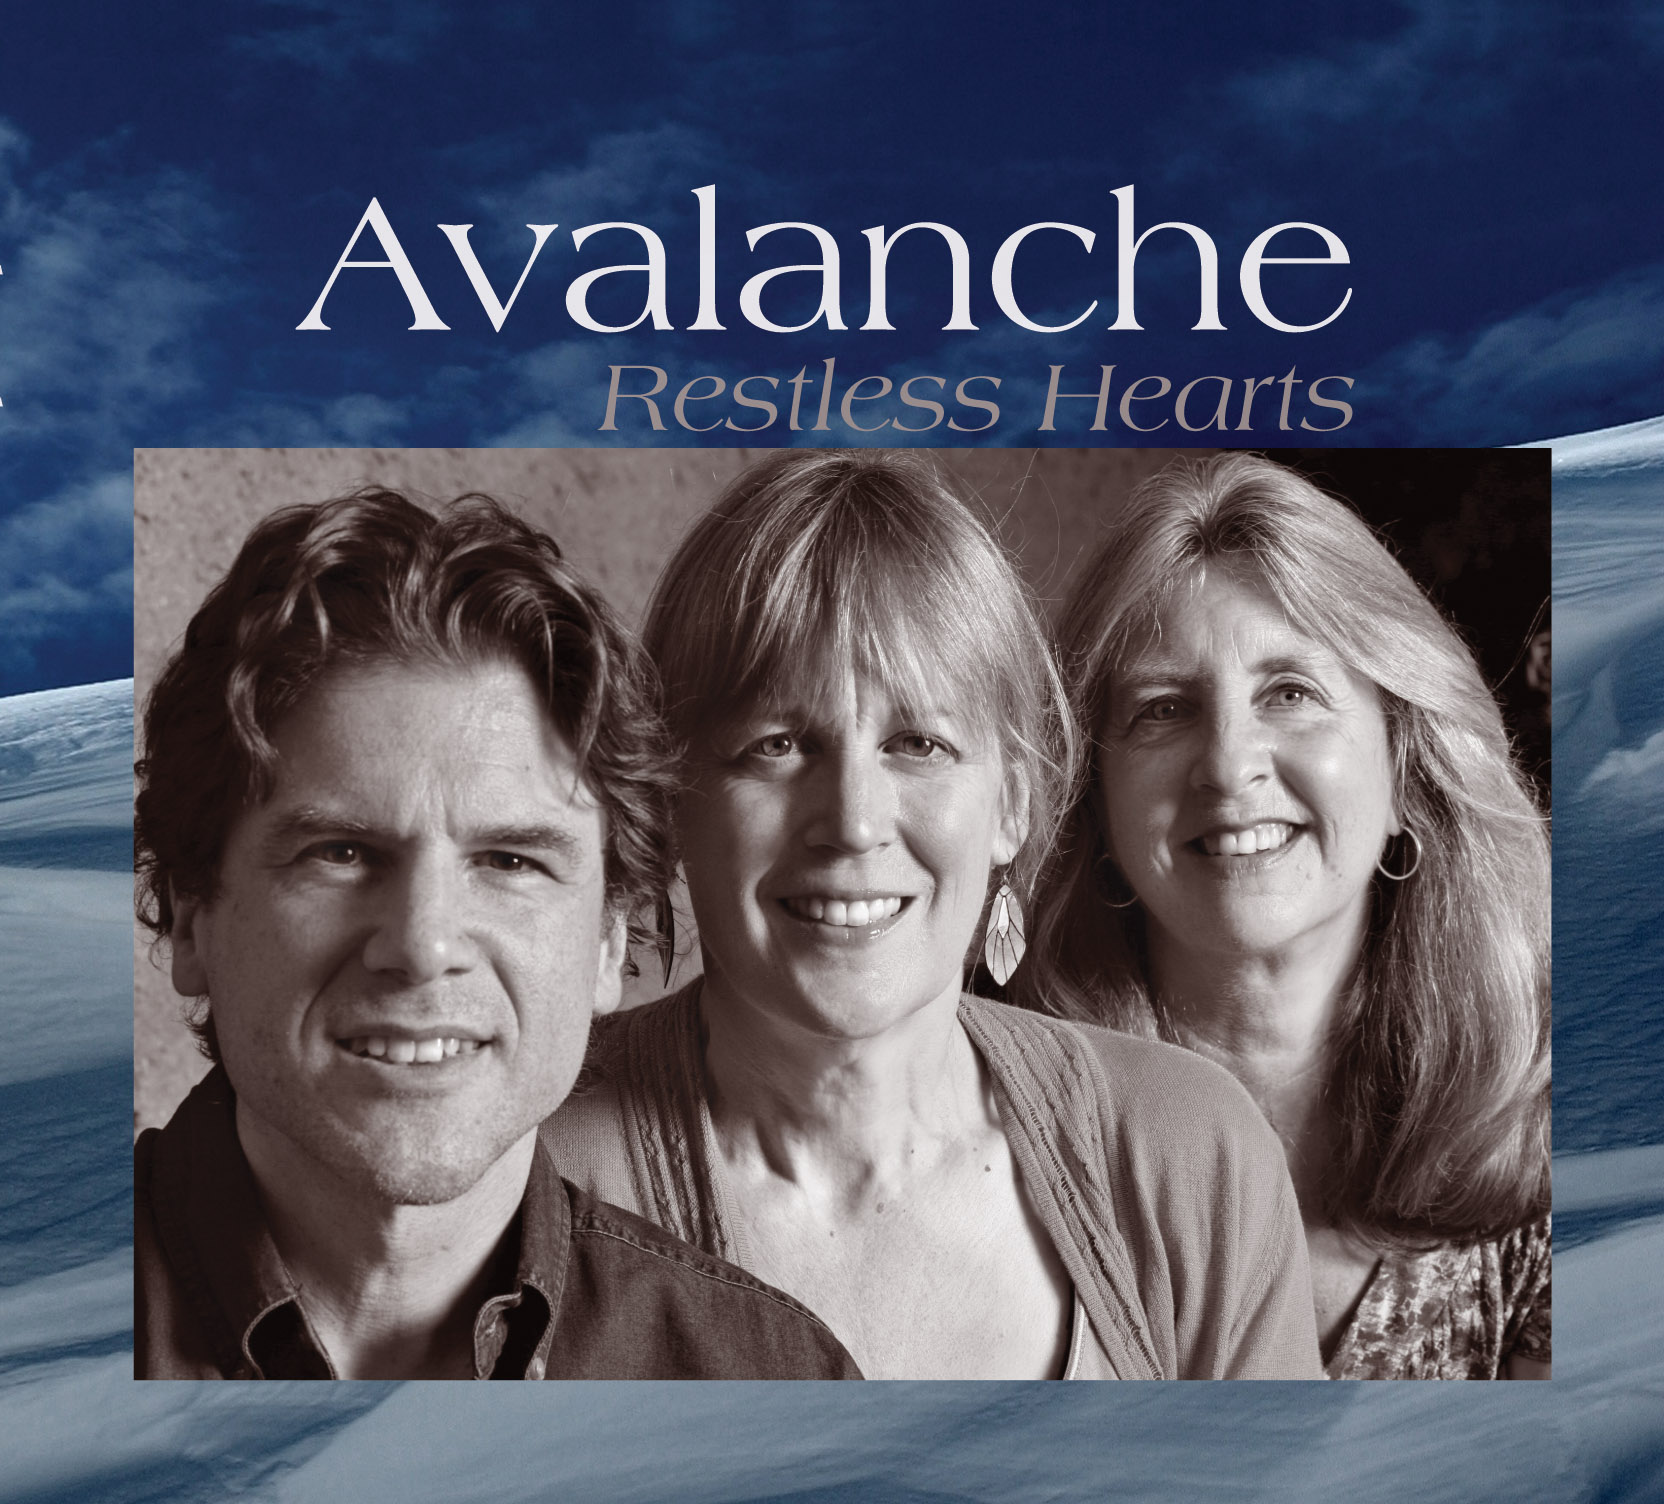 Avalanche CD cover high resolution 12-1-13